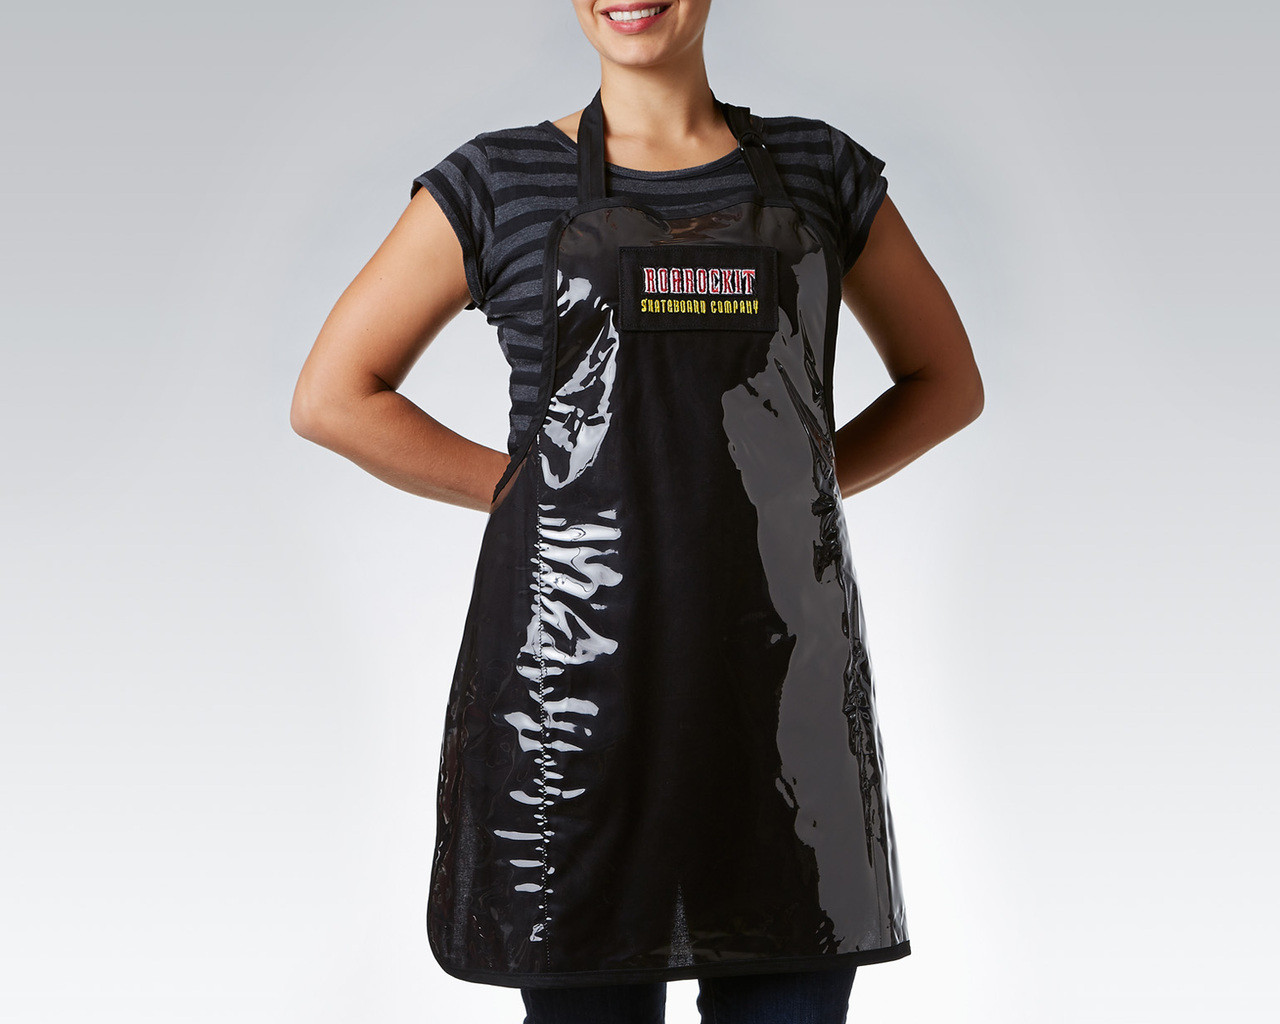 Best Shop Apron For Woodworking